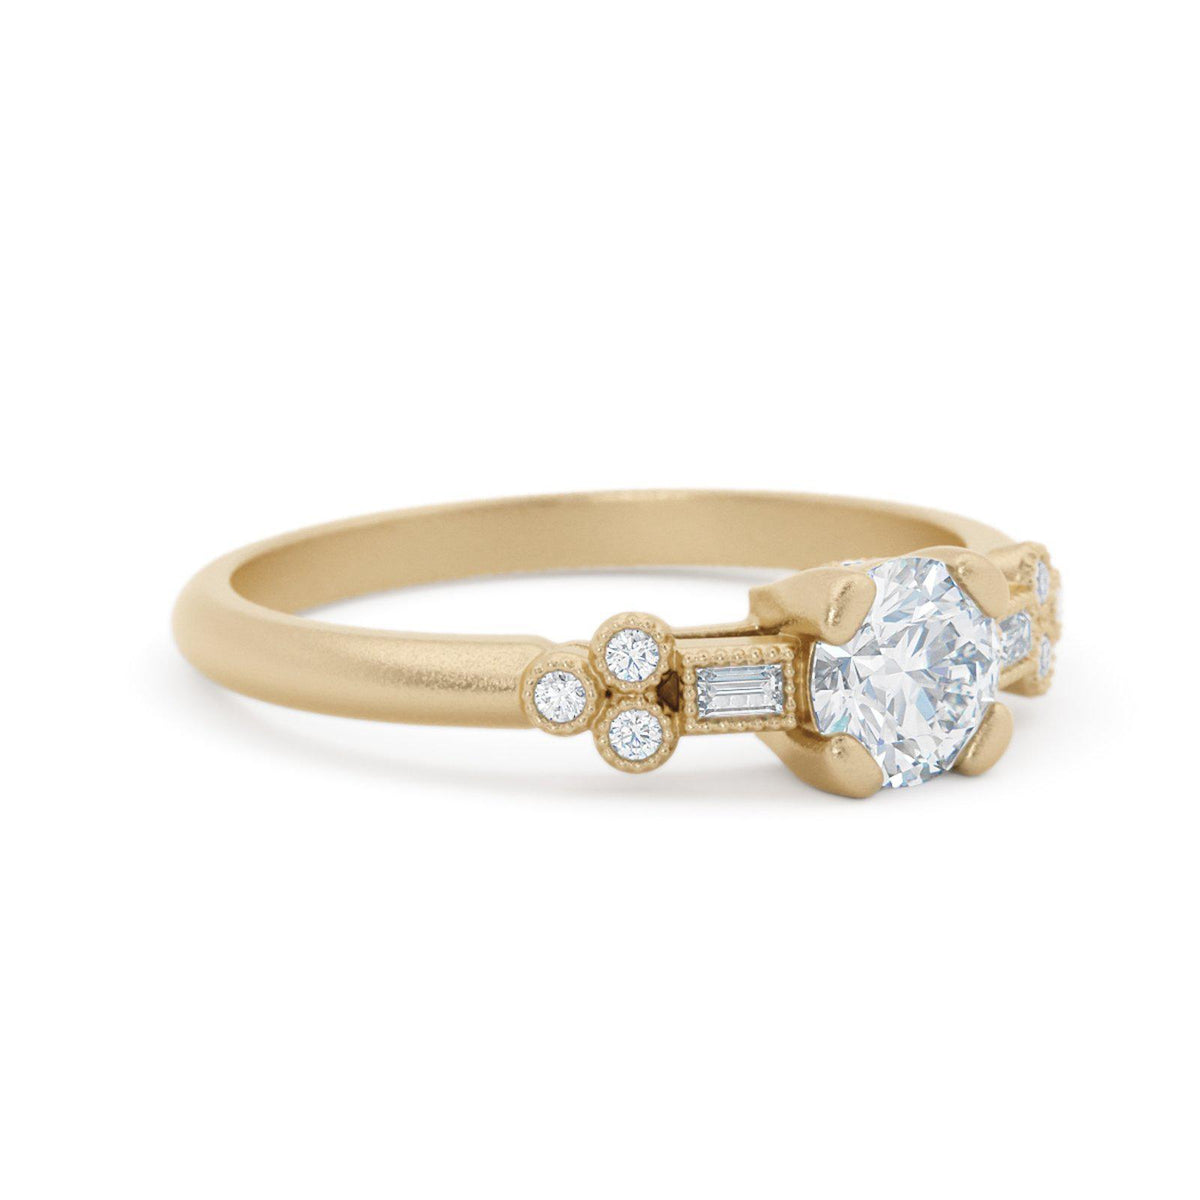 Norah Mae Dainty Diamond Ring Vintage Inspired